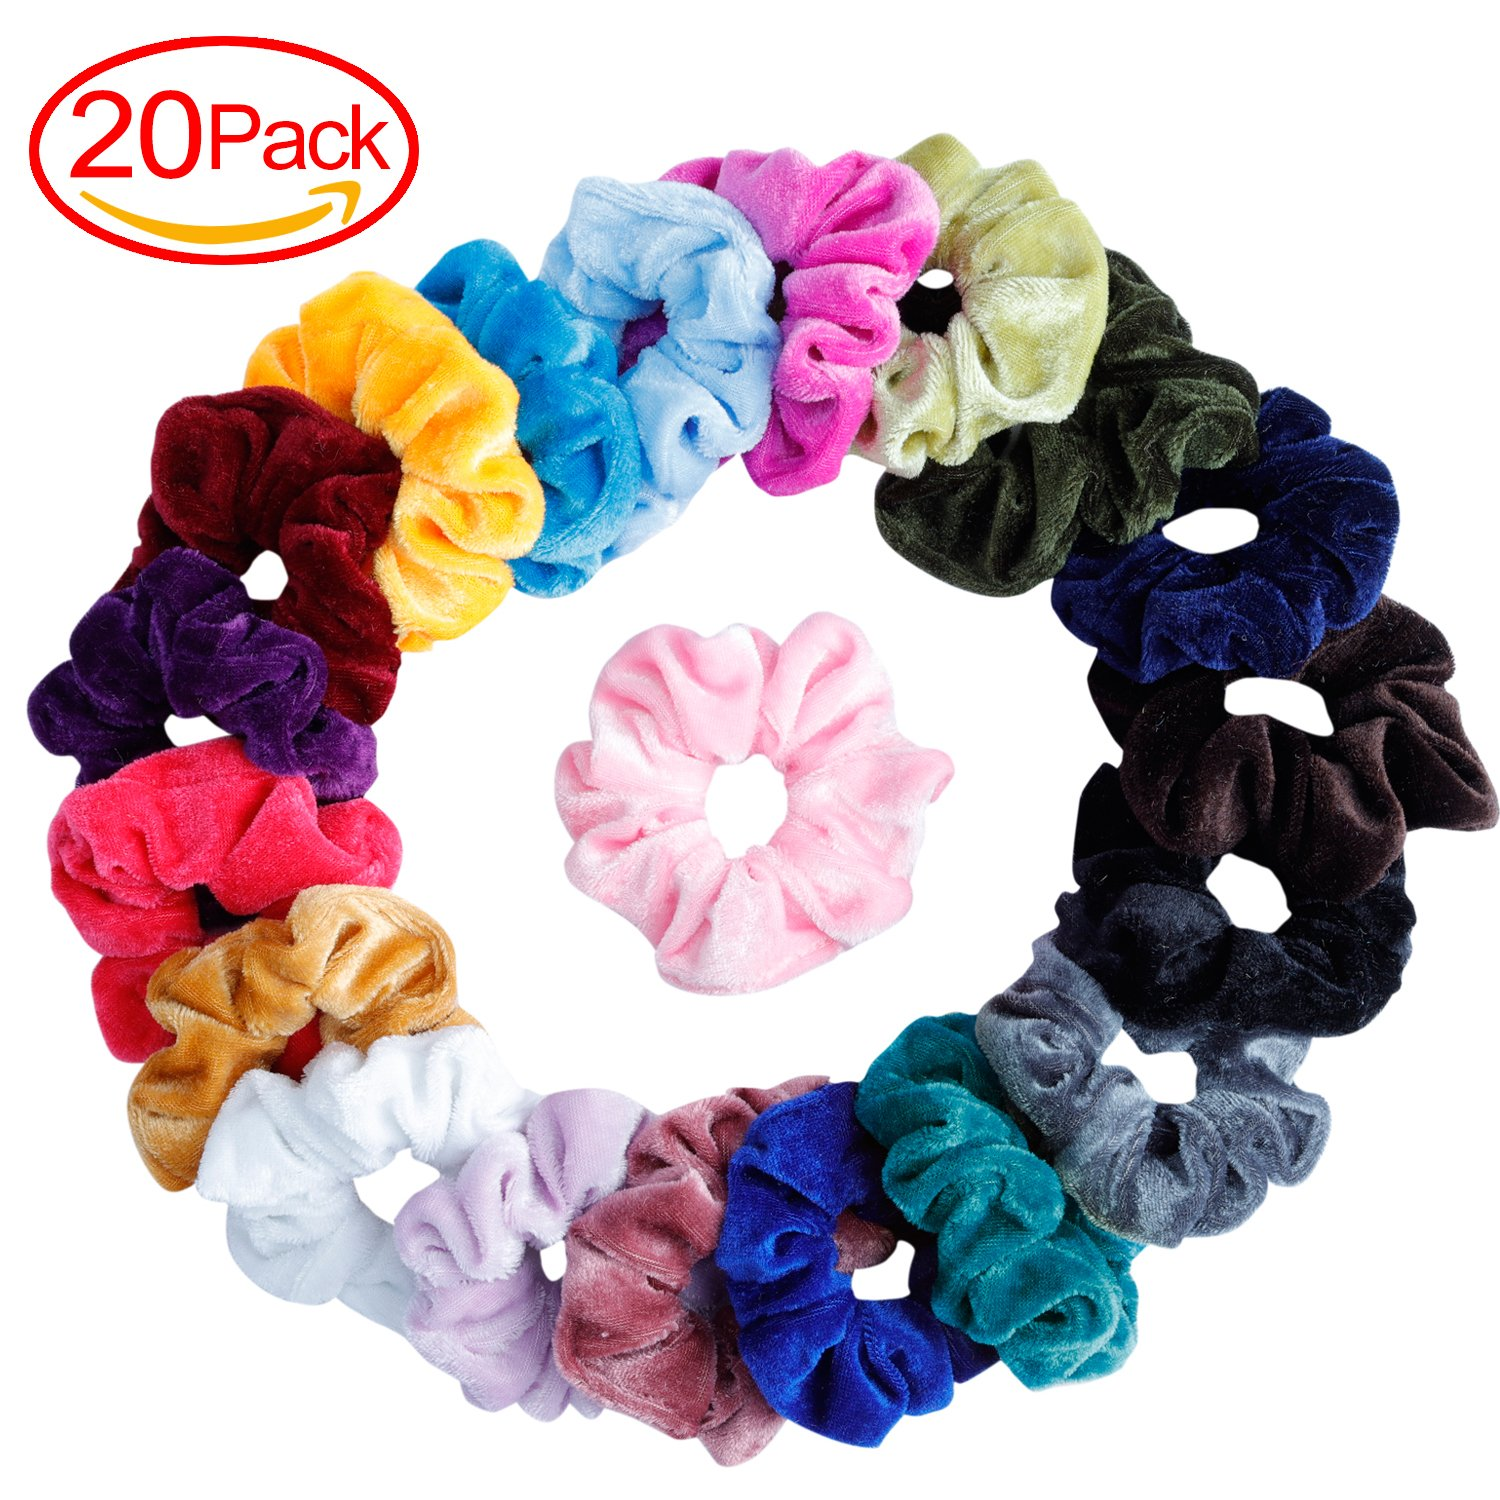 Amazon.com   Mandydov 20 Pcs Hair Scrunchies Velvet Elastic Hair Bands  Scrunchy Hair Ties Ropes Scrunchie for Women or Girls Hair Accessories - 20  Assorted ... 67f30f3407c